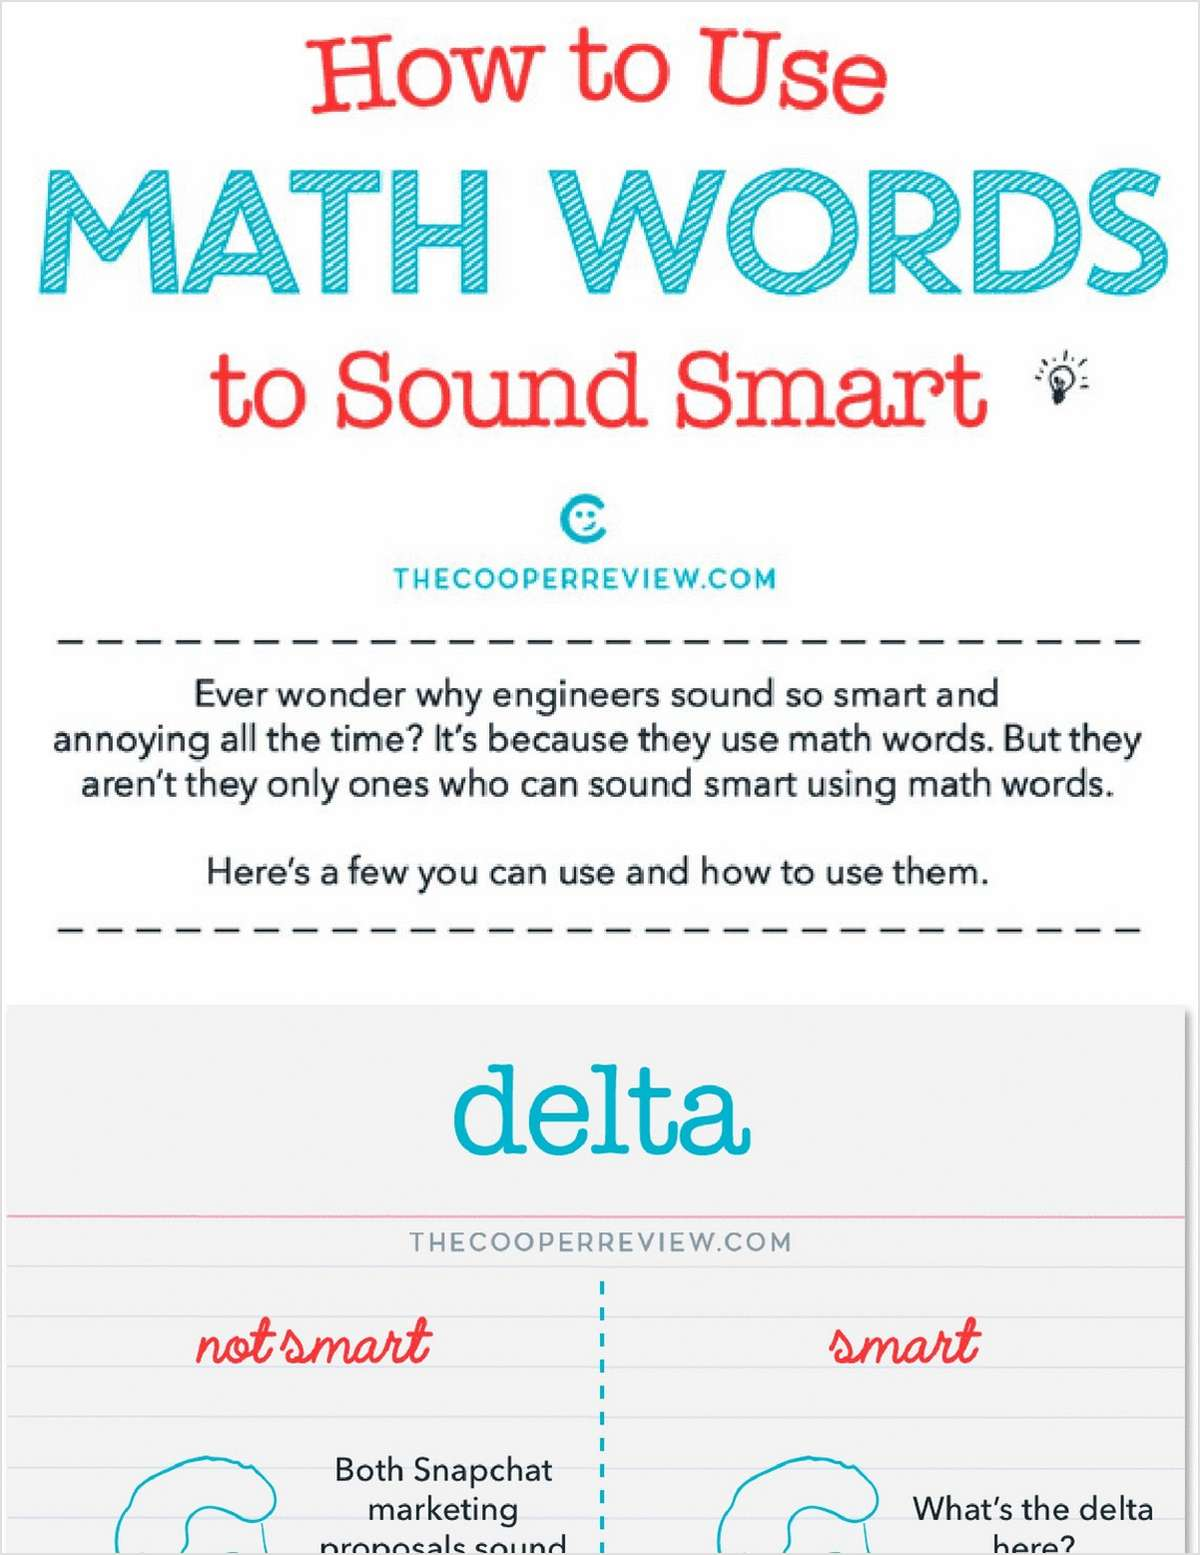 How to Use Math Words to Sound Smart